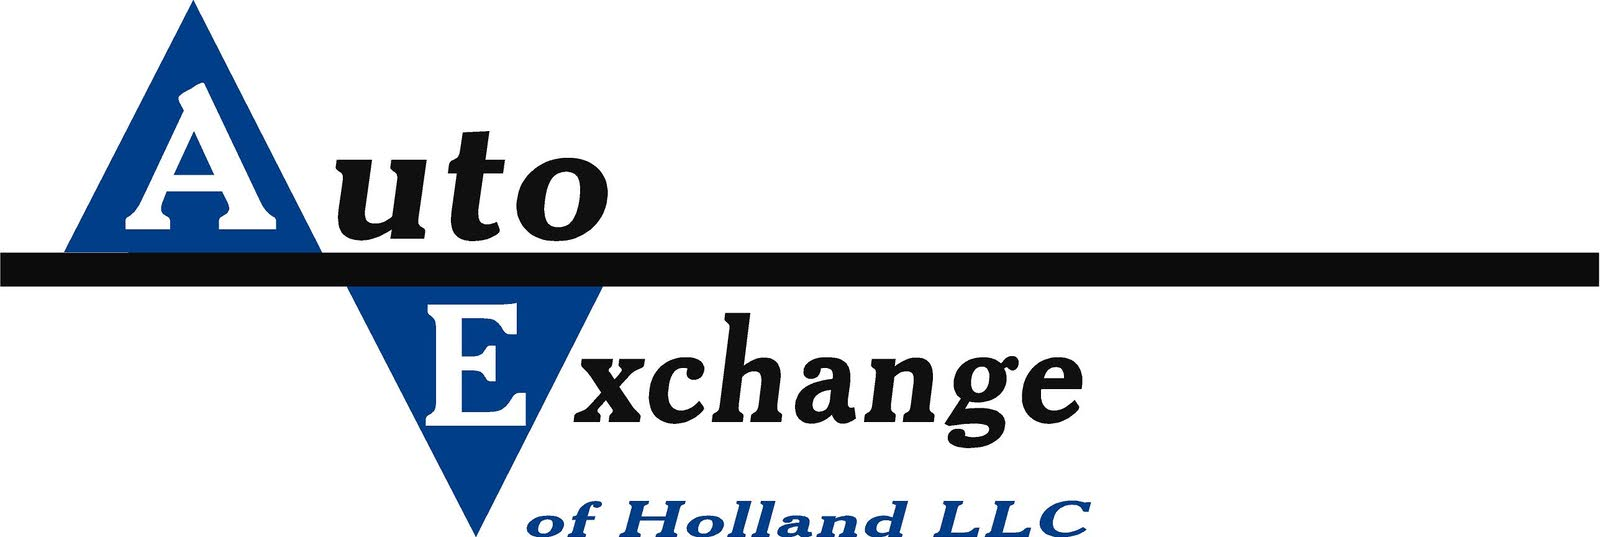 Jeep Dealership Grand Rapids Mi >> Auto Exchange of Holland LLC - Holland, MI: Read Consumer reviews, Browse Used and New Cars for Sale